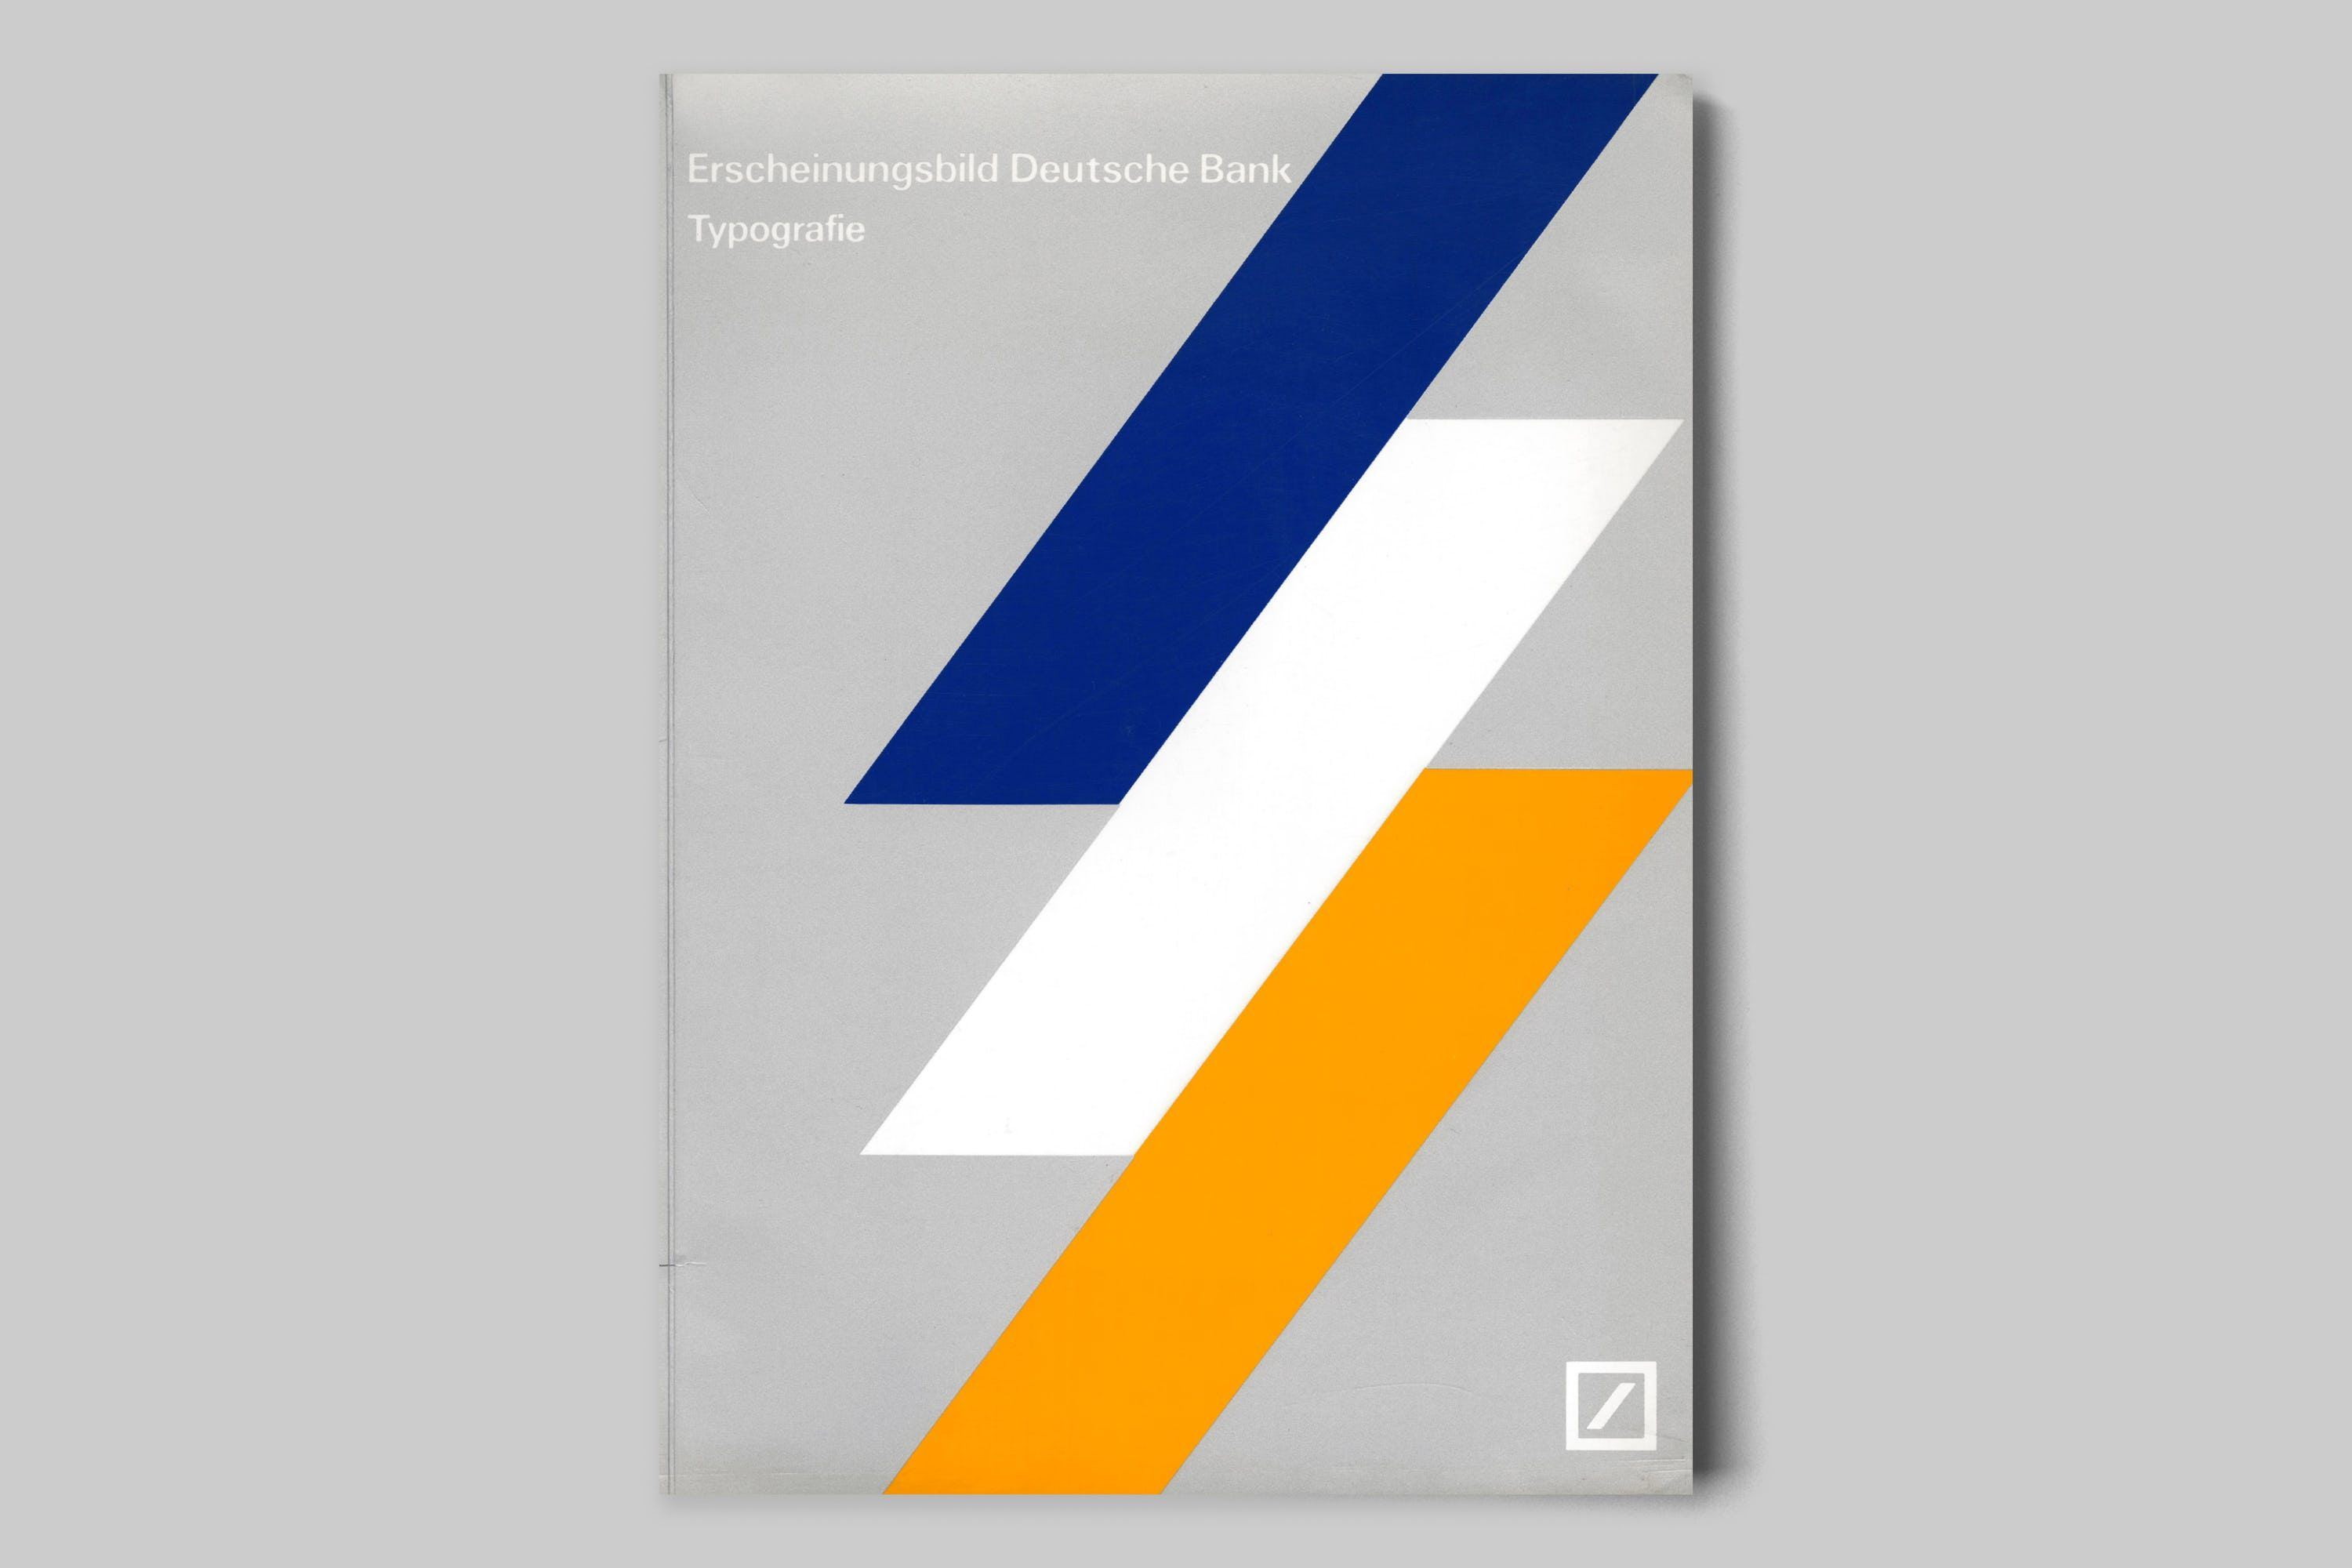 Manual De Diseno Stankowski Deutsche Bank Pdf In 2020 Bank Design Sports Graphic Design Visual Identity Design